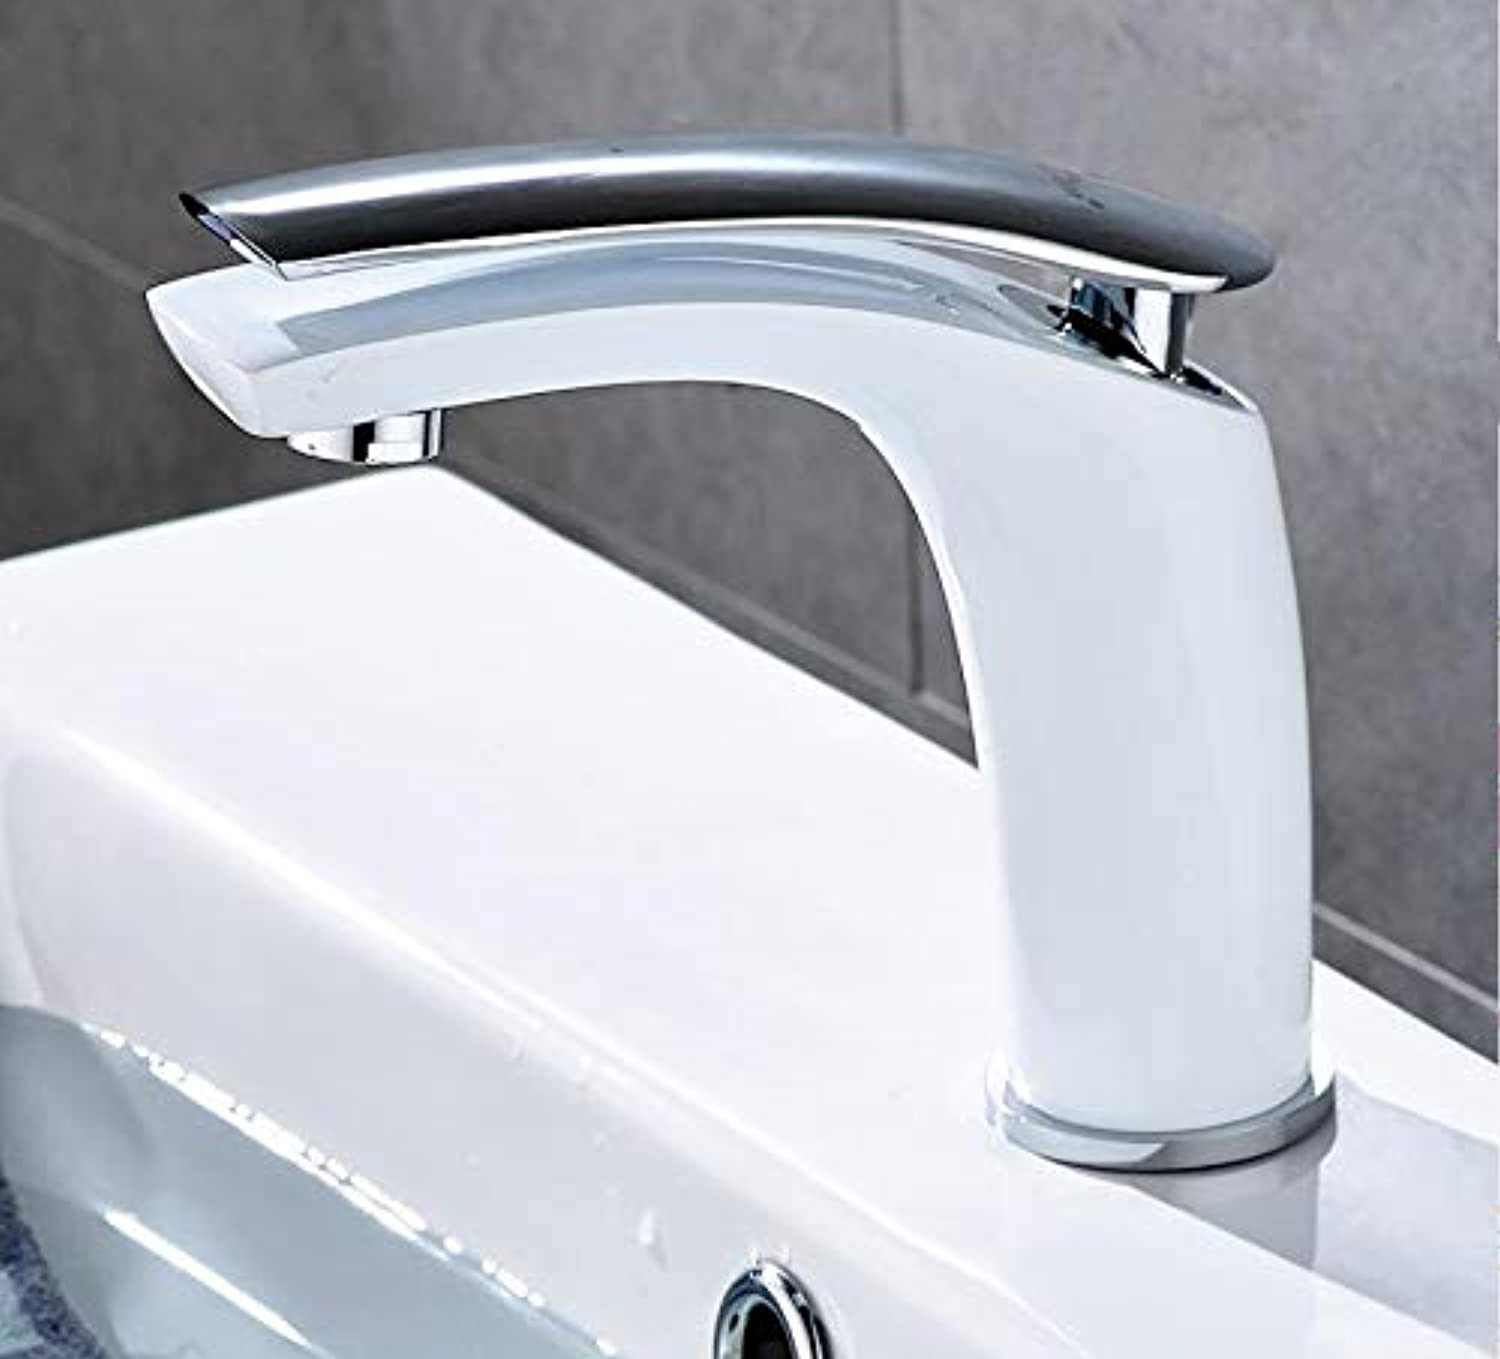 Basin Faucet Faucetwhite Face Single Holder Single Hole Mounted Sink Taps Cold and Hot Mixer for Bathroom Black Basin Tap